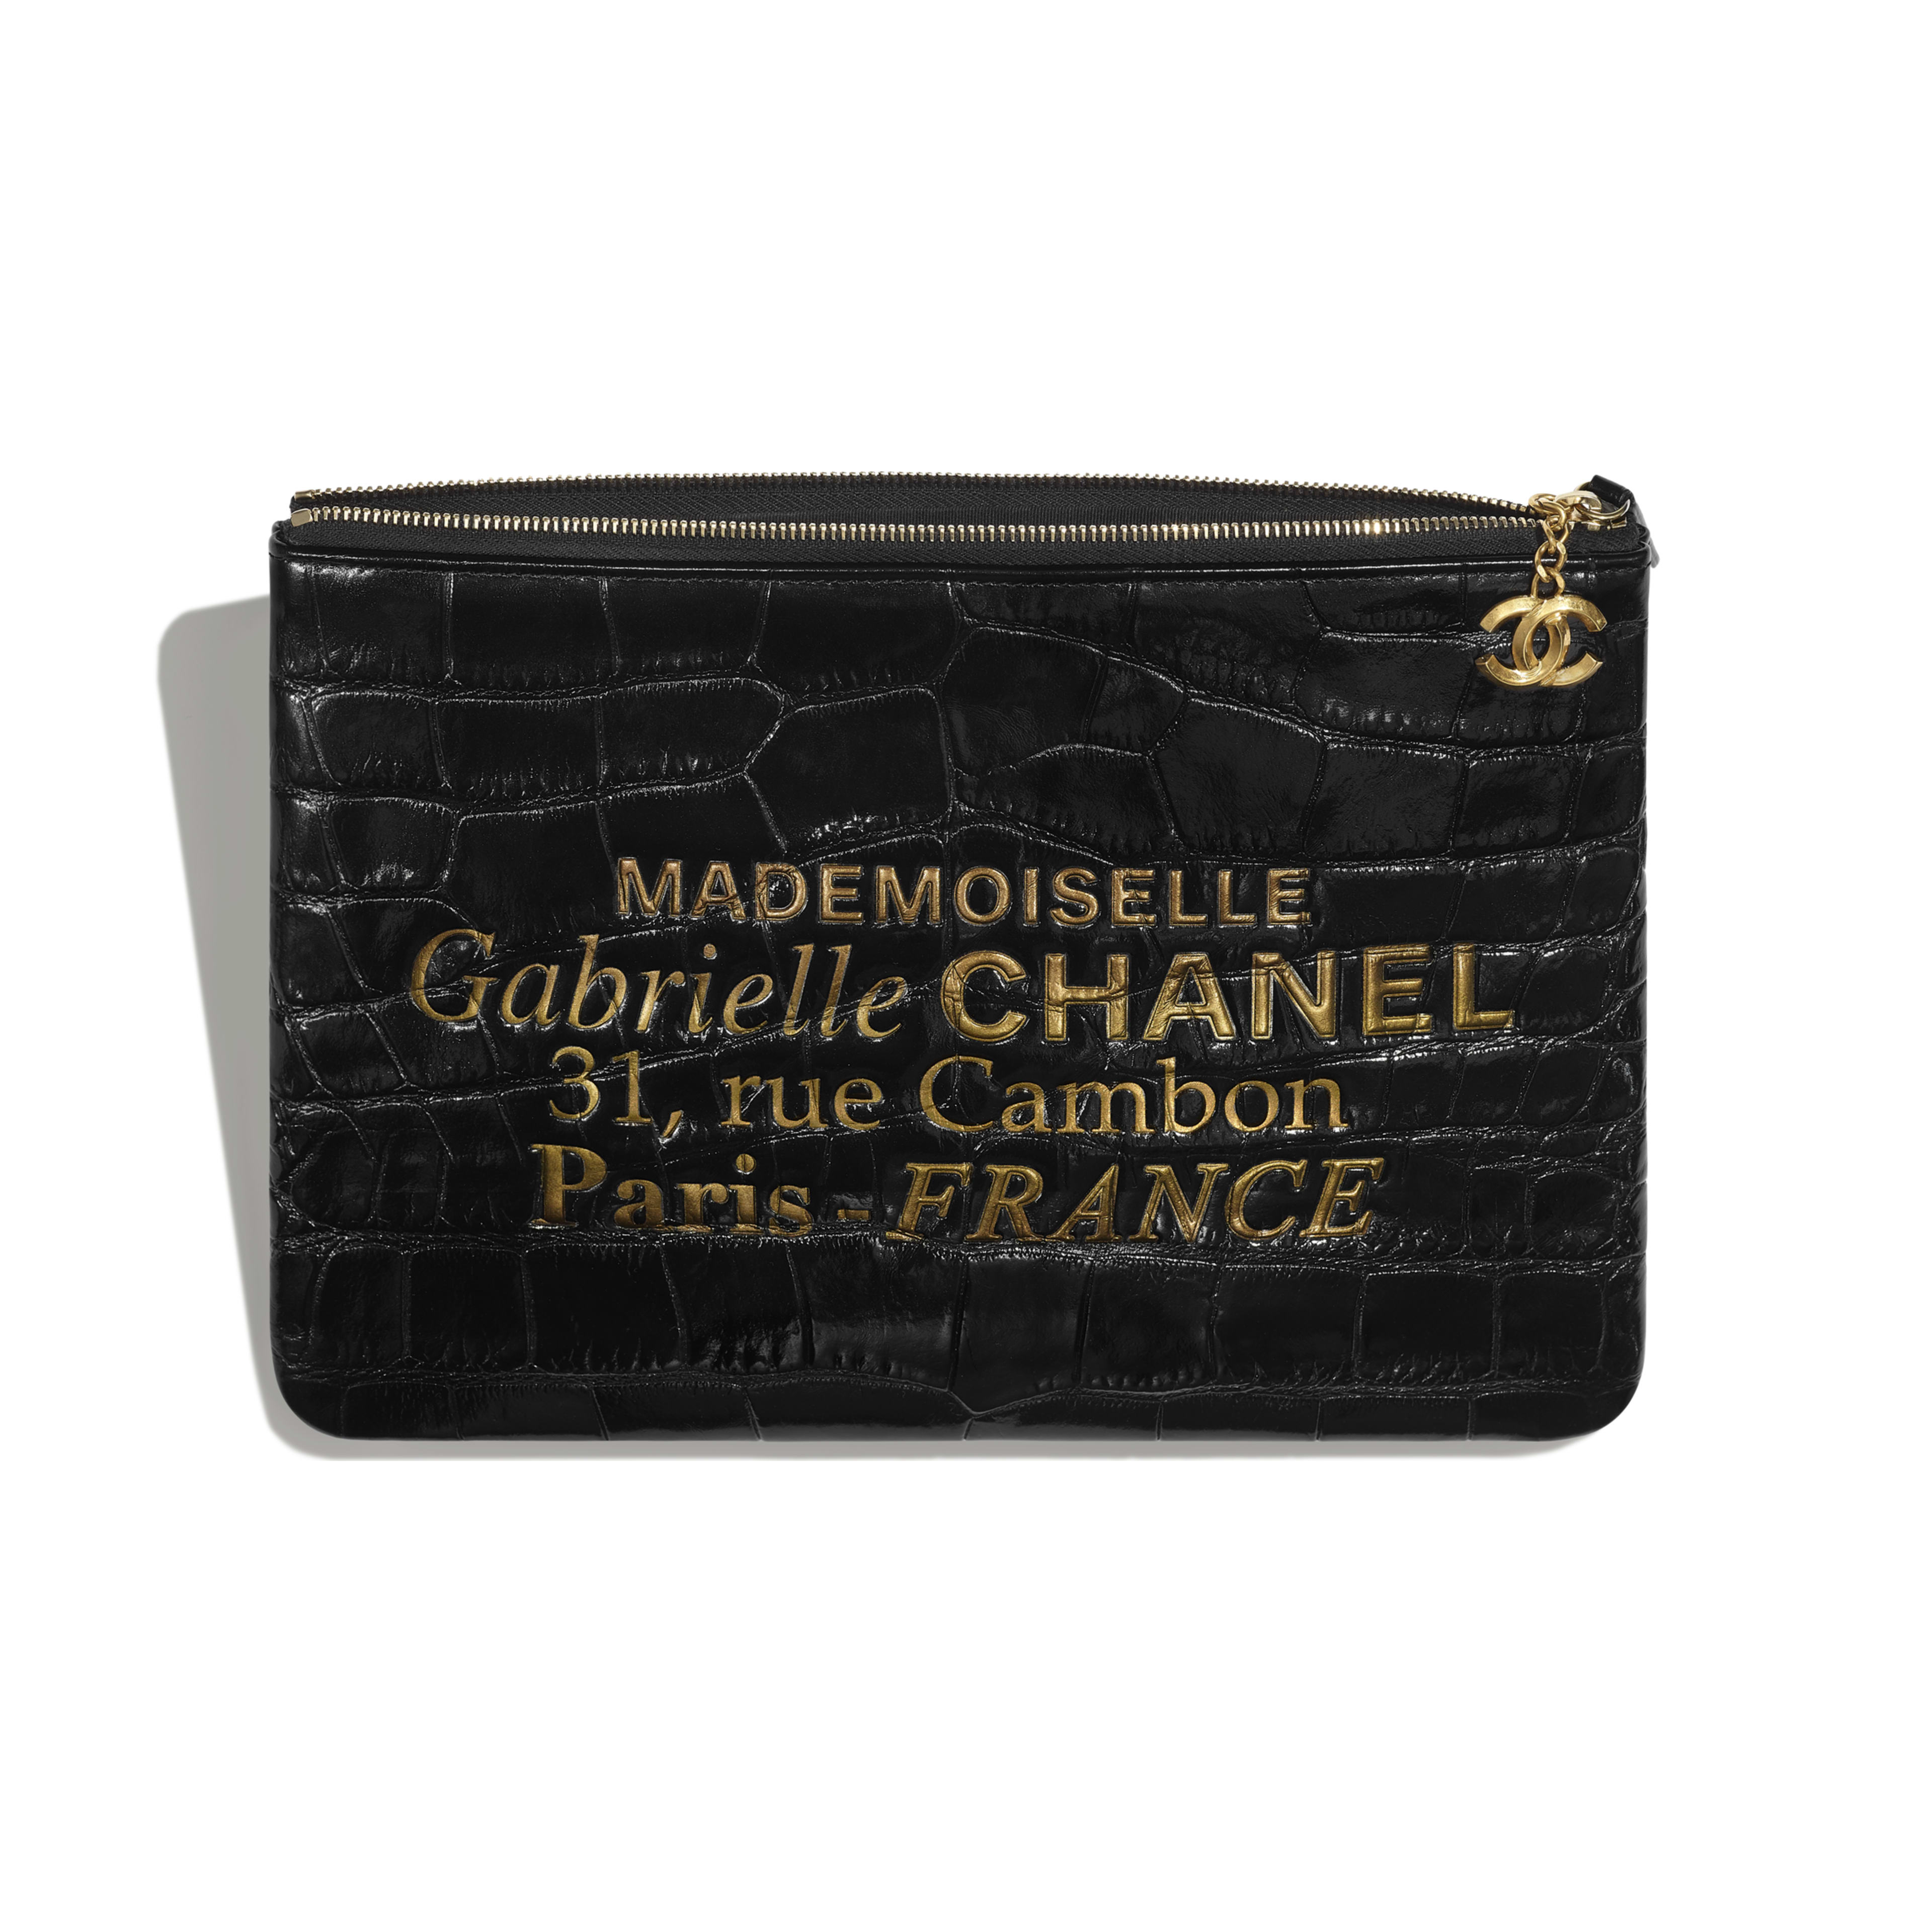 Pouch - Black & Gold - Crocodile Embossed Patent Calfskin & Gold-Tone Metal - Other view - see full sized version